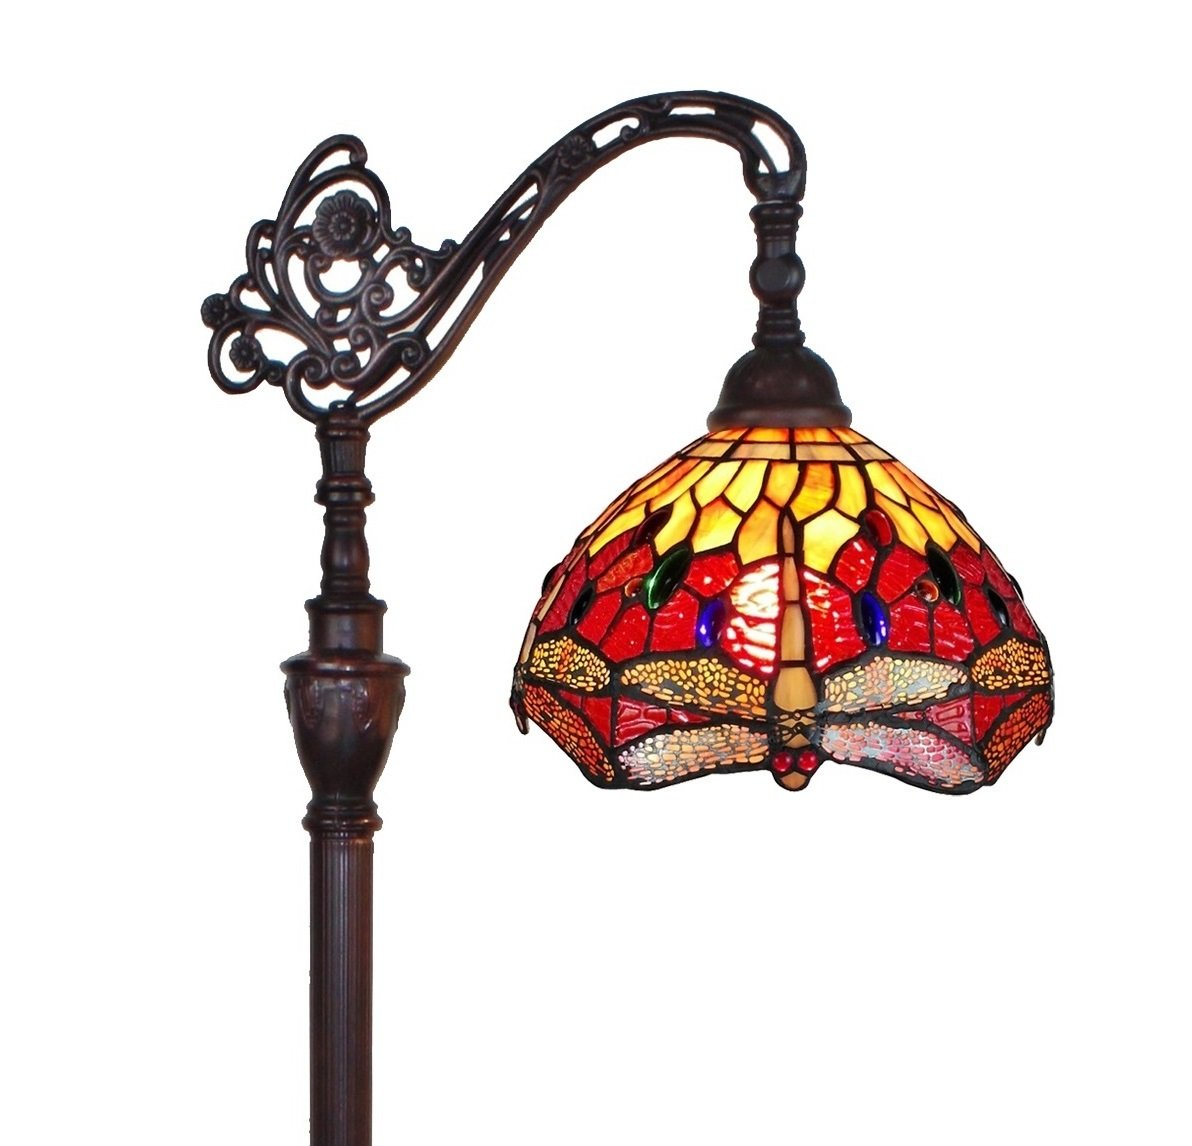 Amora lighting am079fl10 tiffany style dragonfly reading floor lamp amora lighting am079fl10 tiffany style dragonfly reading floor lamp 62 in amazon aloadofball Image collections